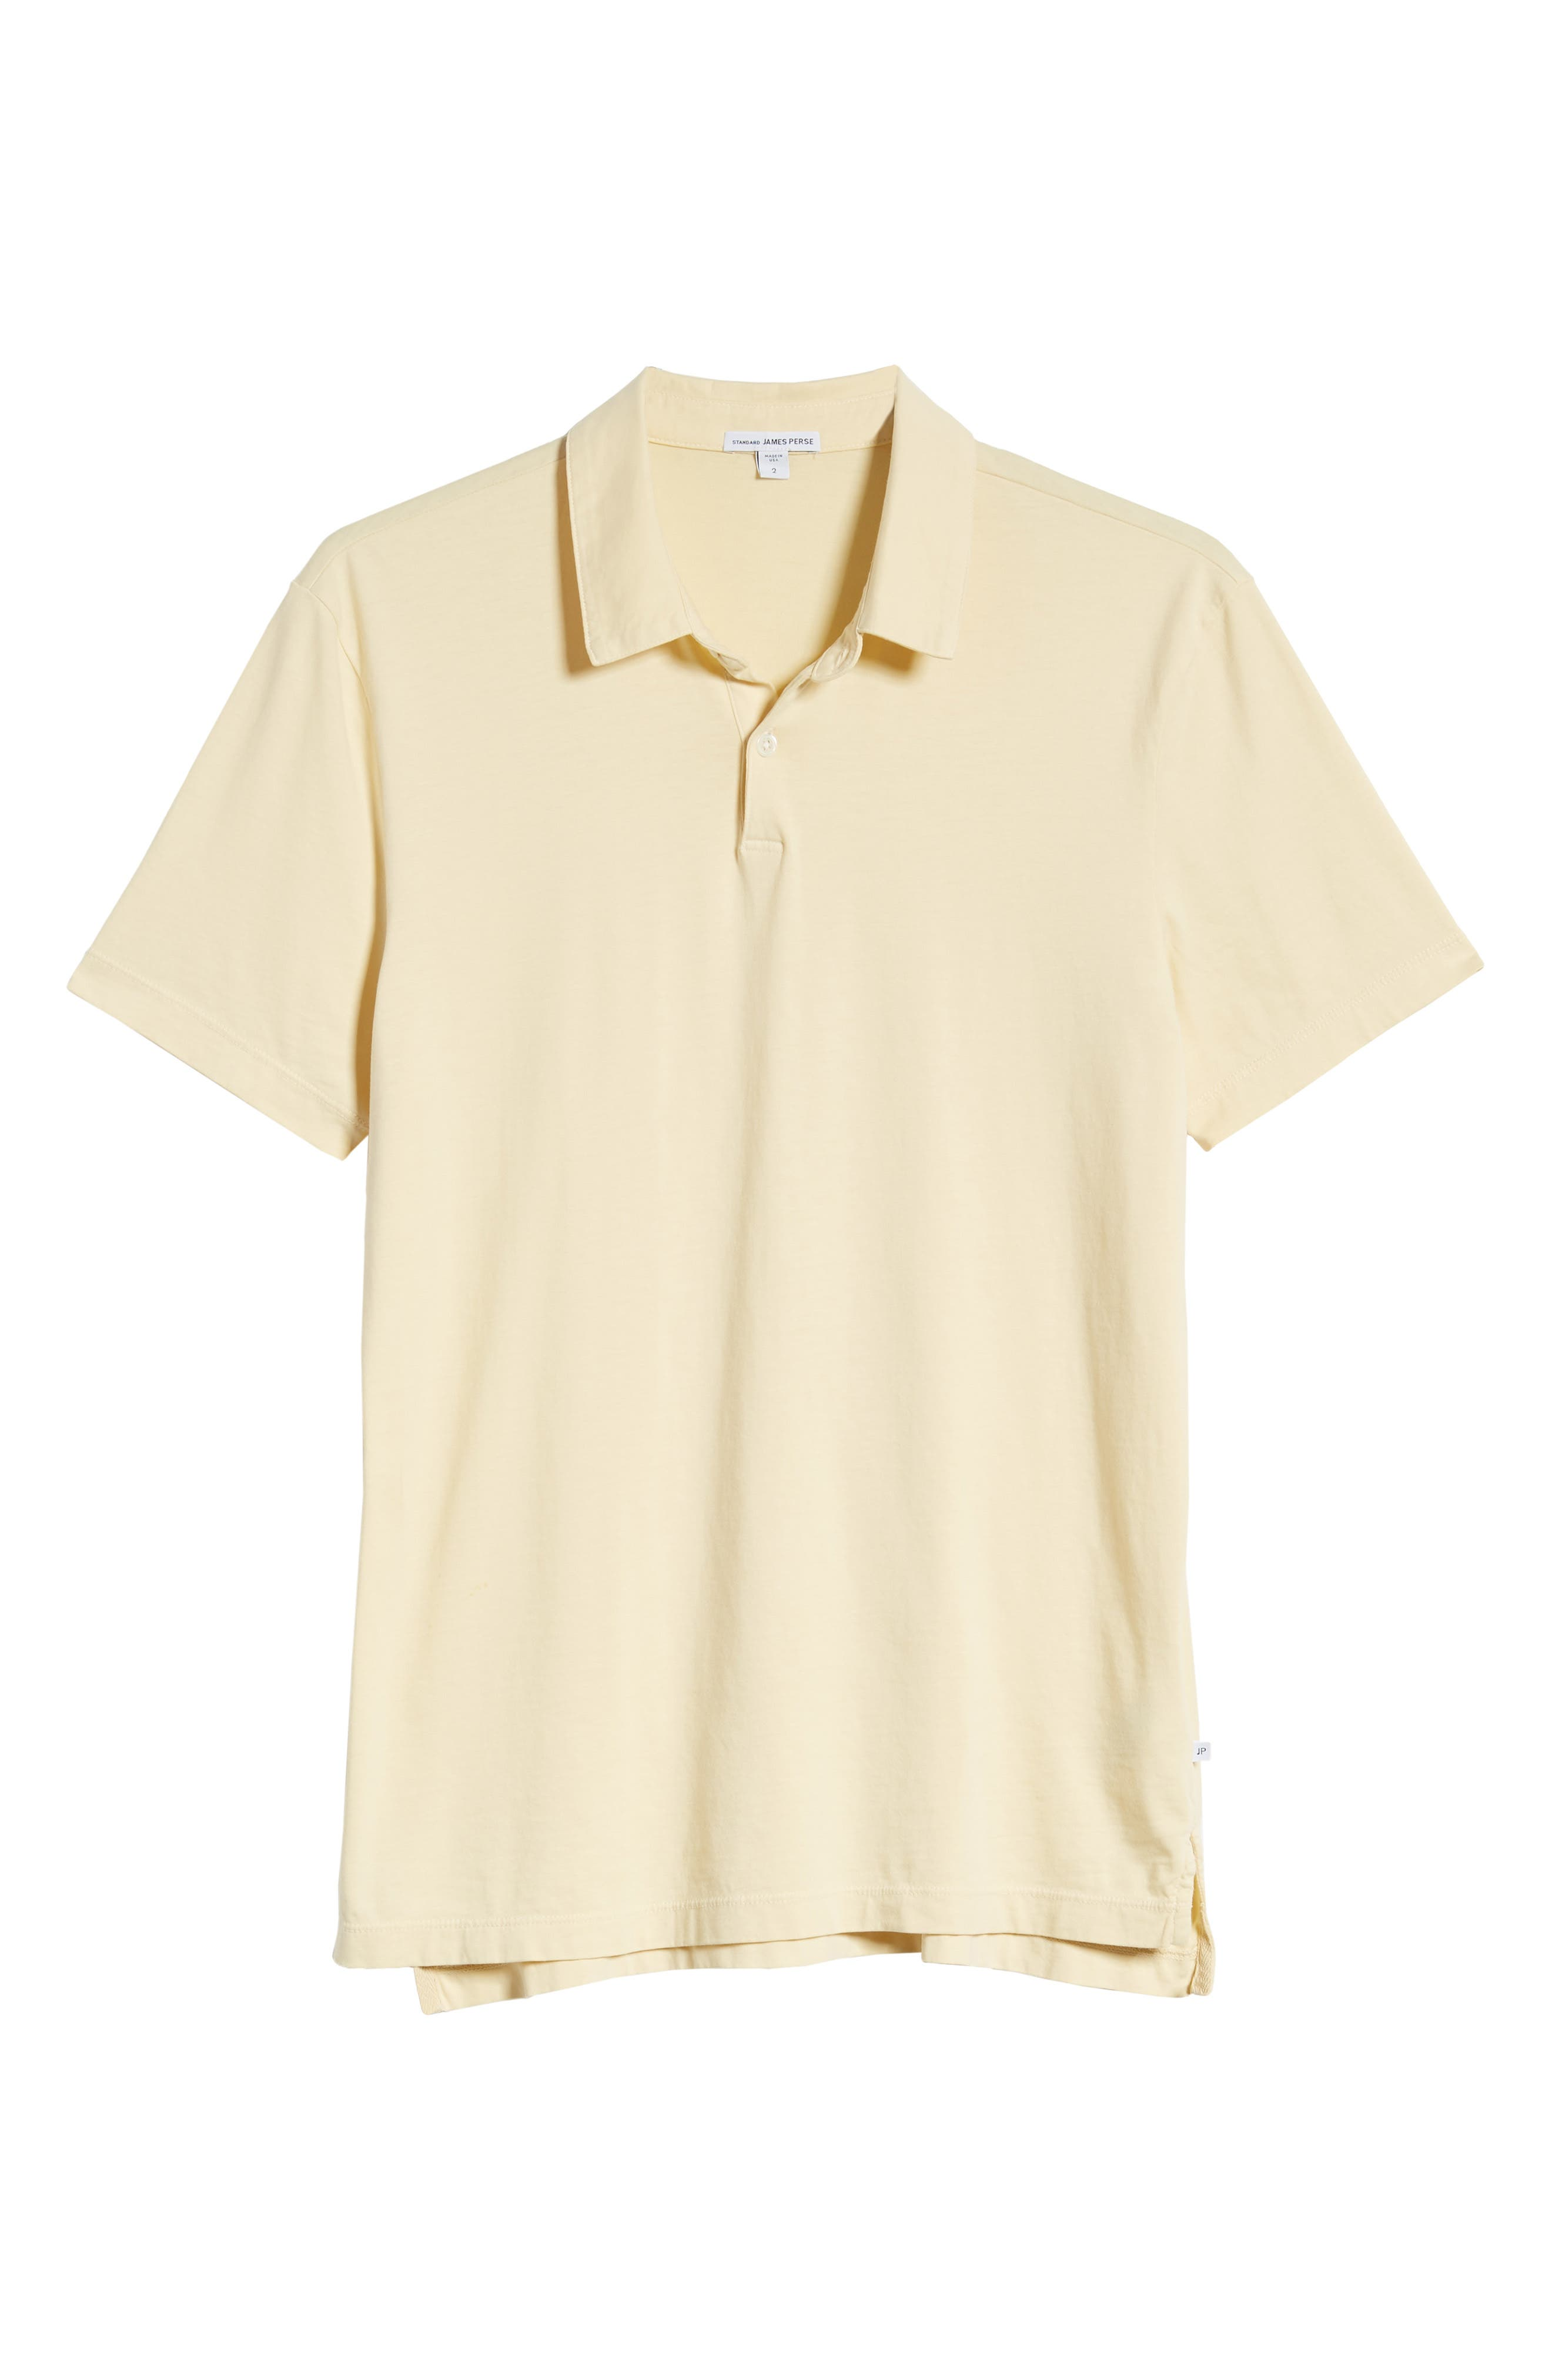 JAMES PERSE, Slim Fit Sueded Jersey Polo, Alternate thumbnail 6, color, GESSO